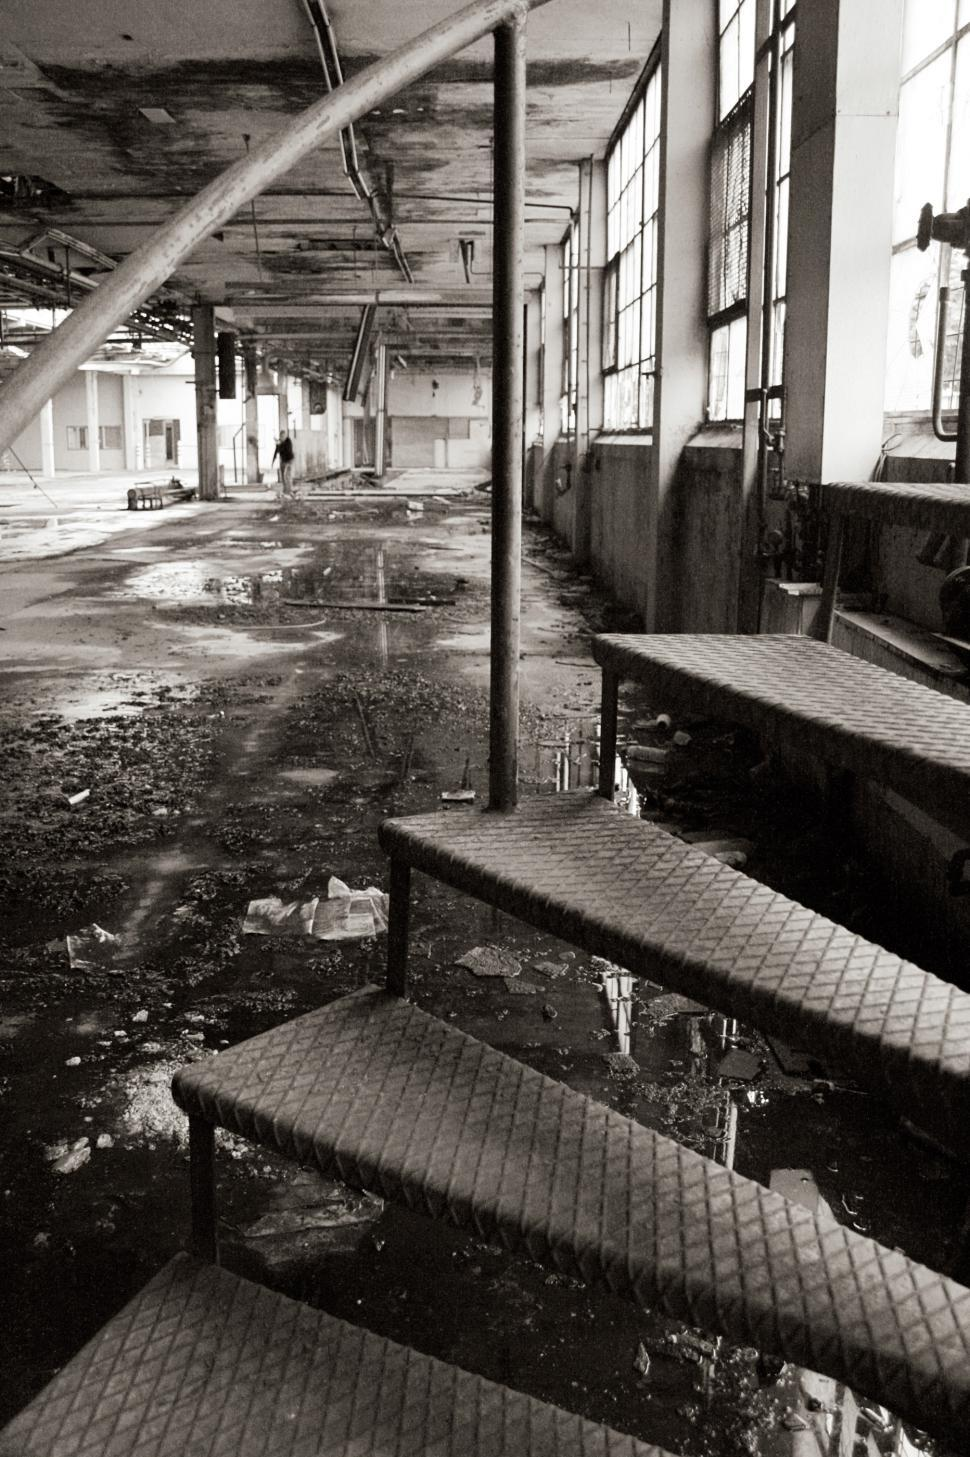 Download Free Stock HD Photo of Abandoned factory floor Online